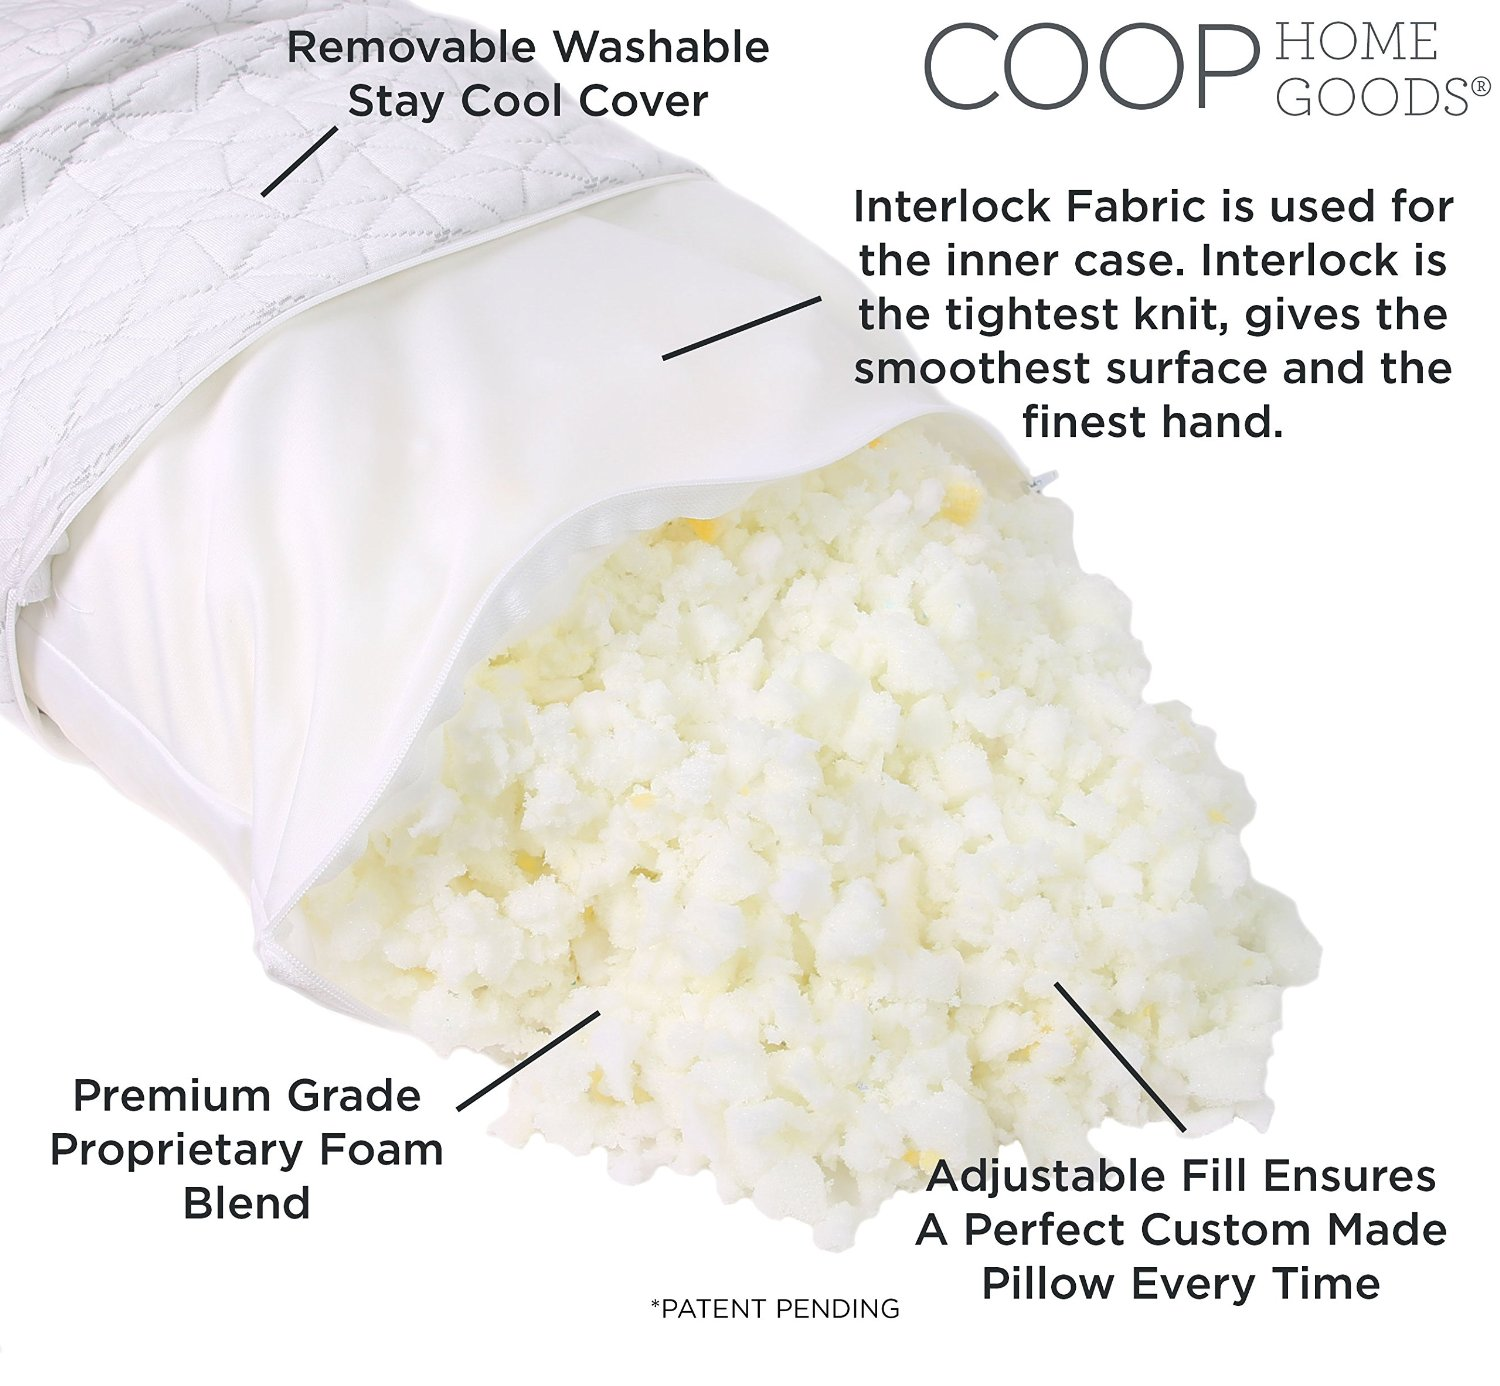 Interlock Fabric is inside Coop Home Goods Shredded Hypoallergenic Memory Foam Pillow